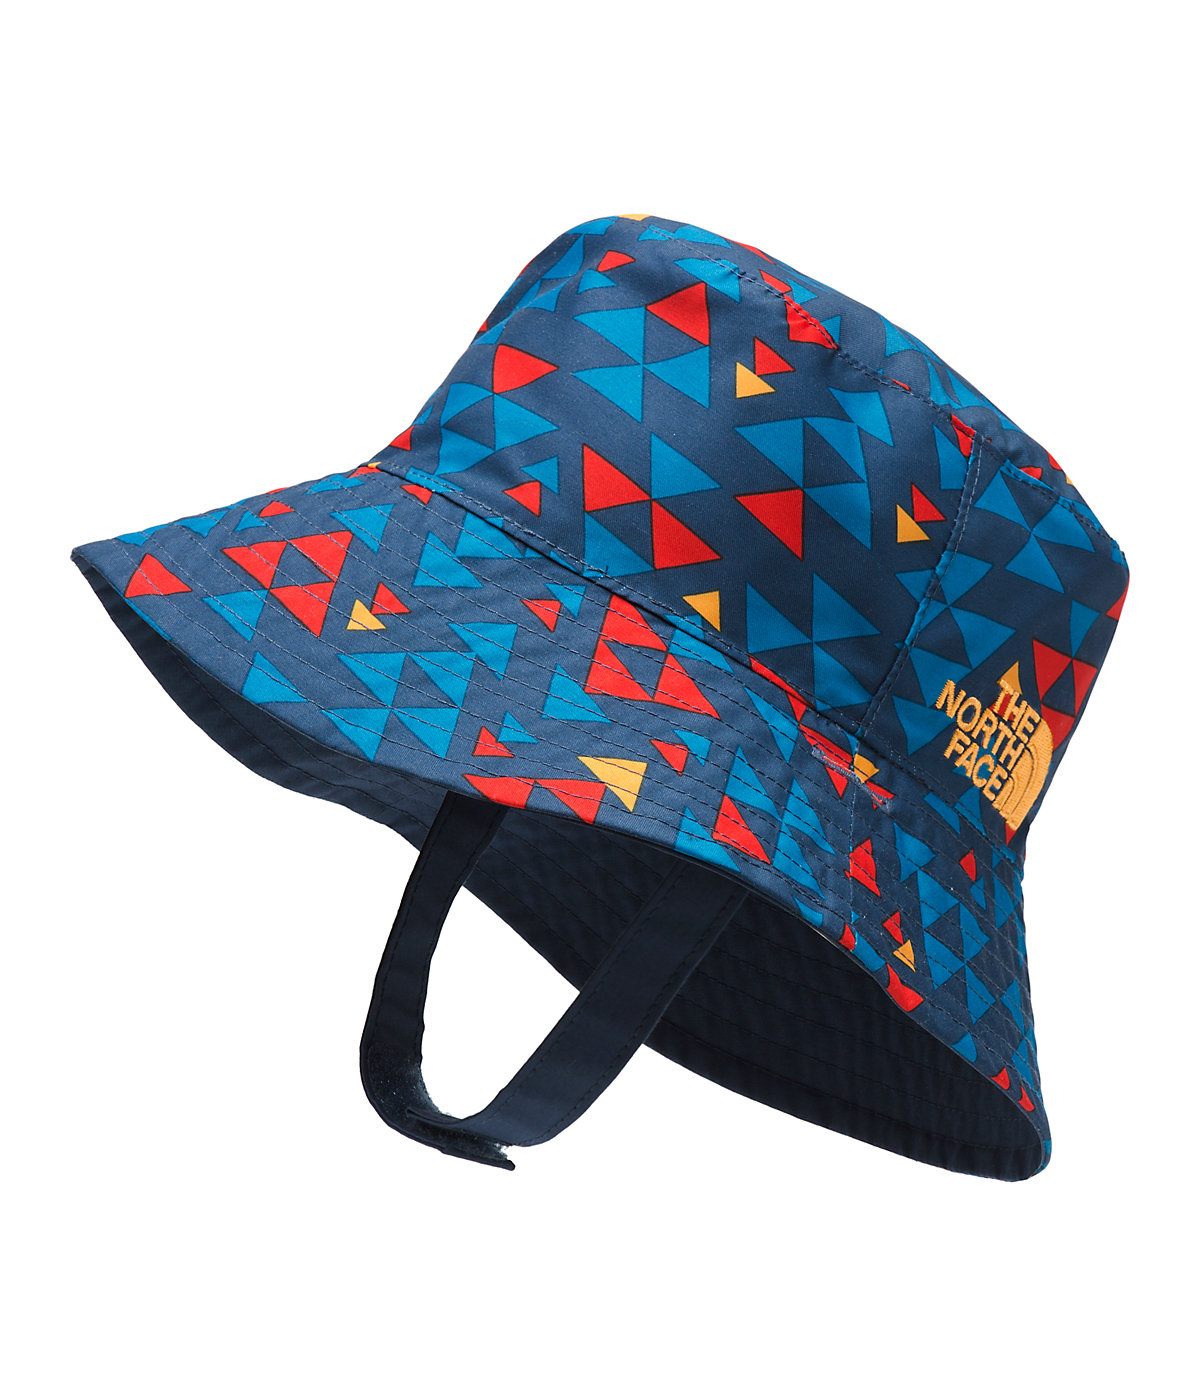 6024c1f96 Baby sun bucket in 2019 | Products | Baby sun hat, Toddler sun hat ...